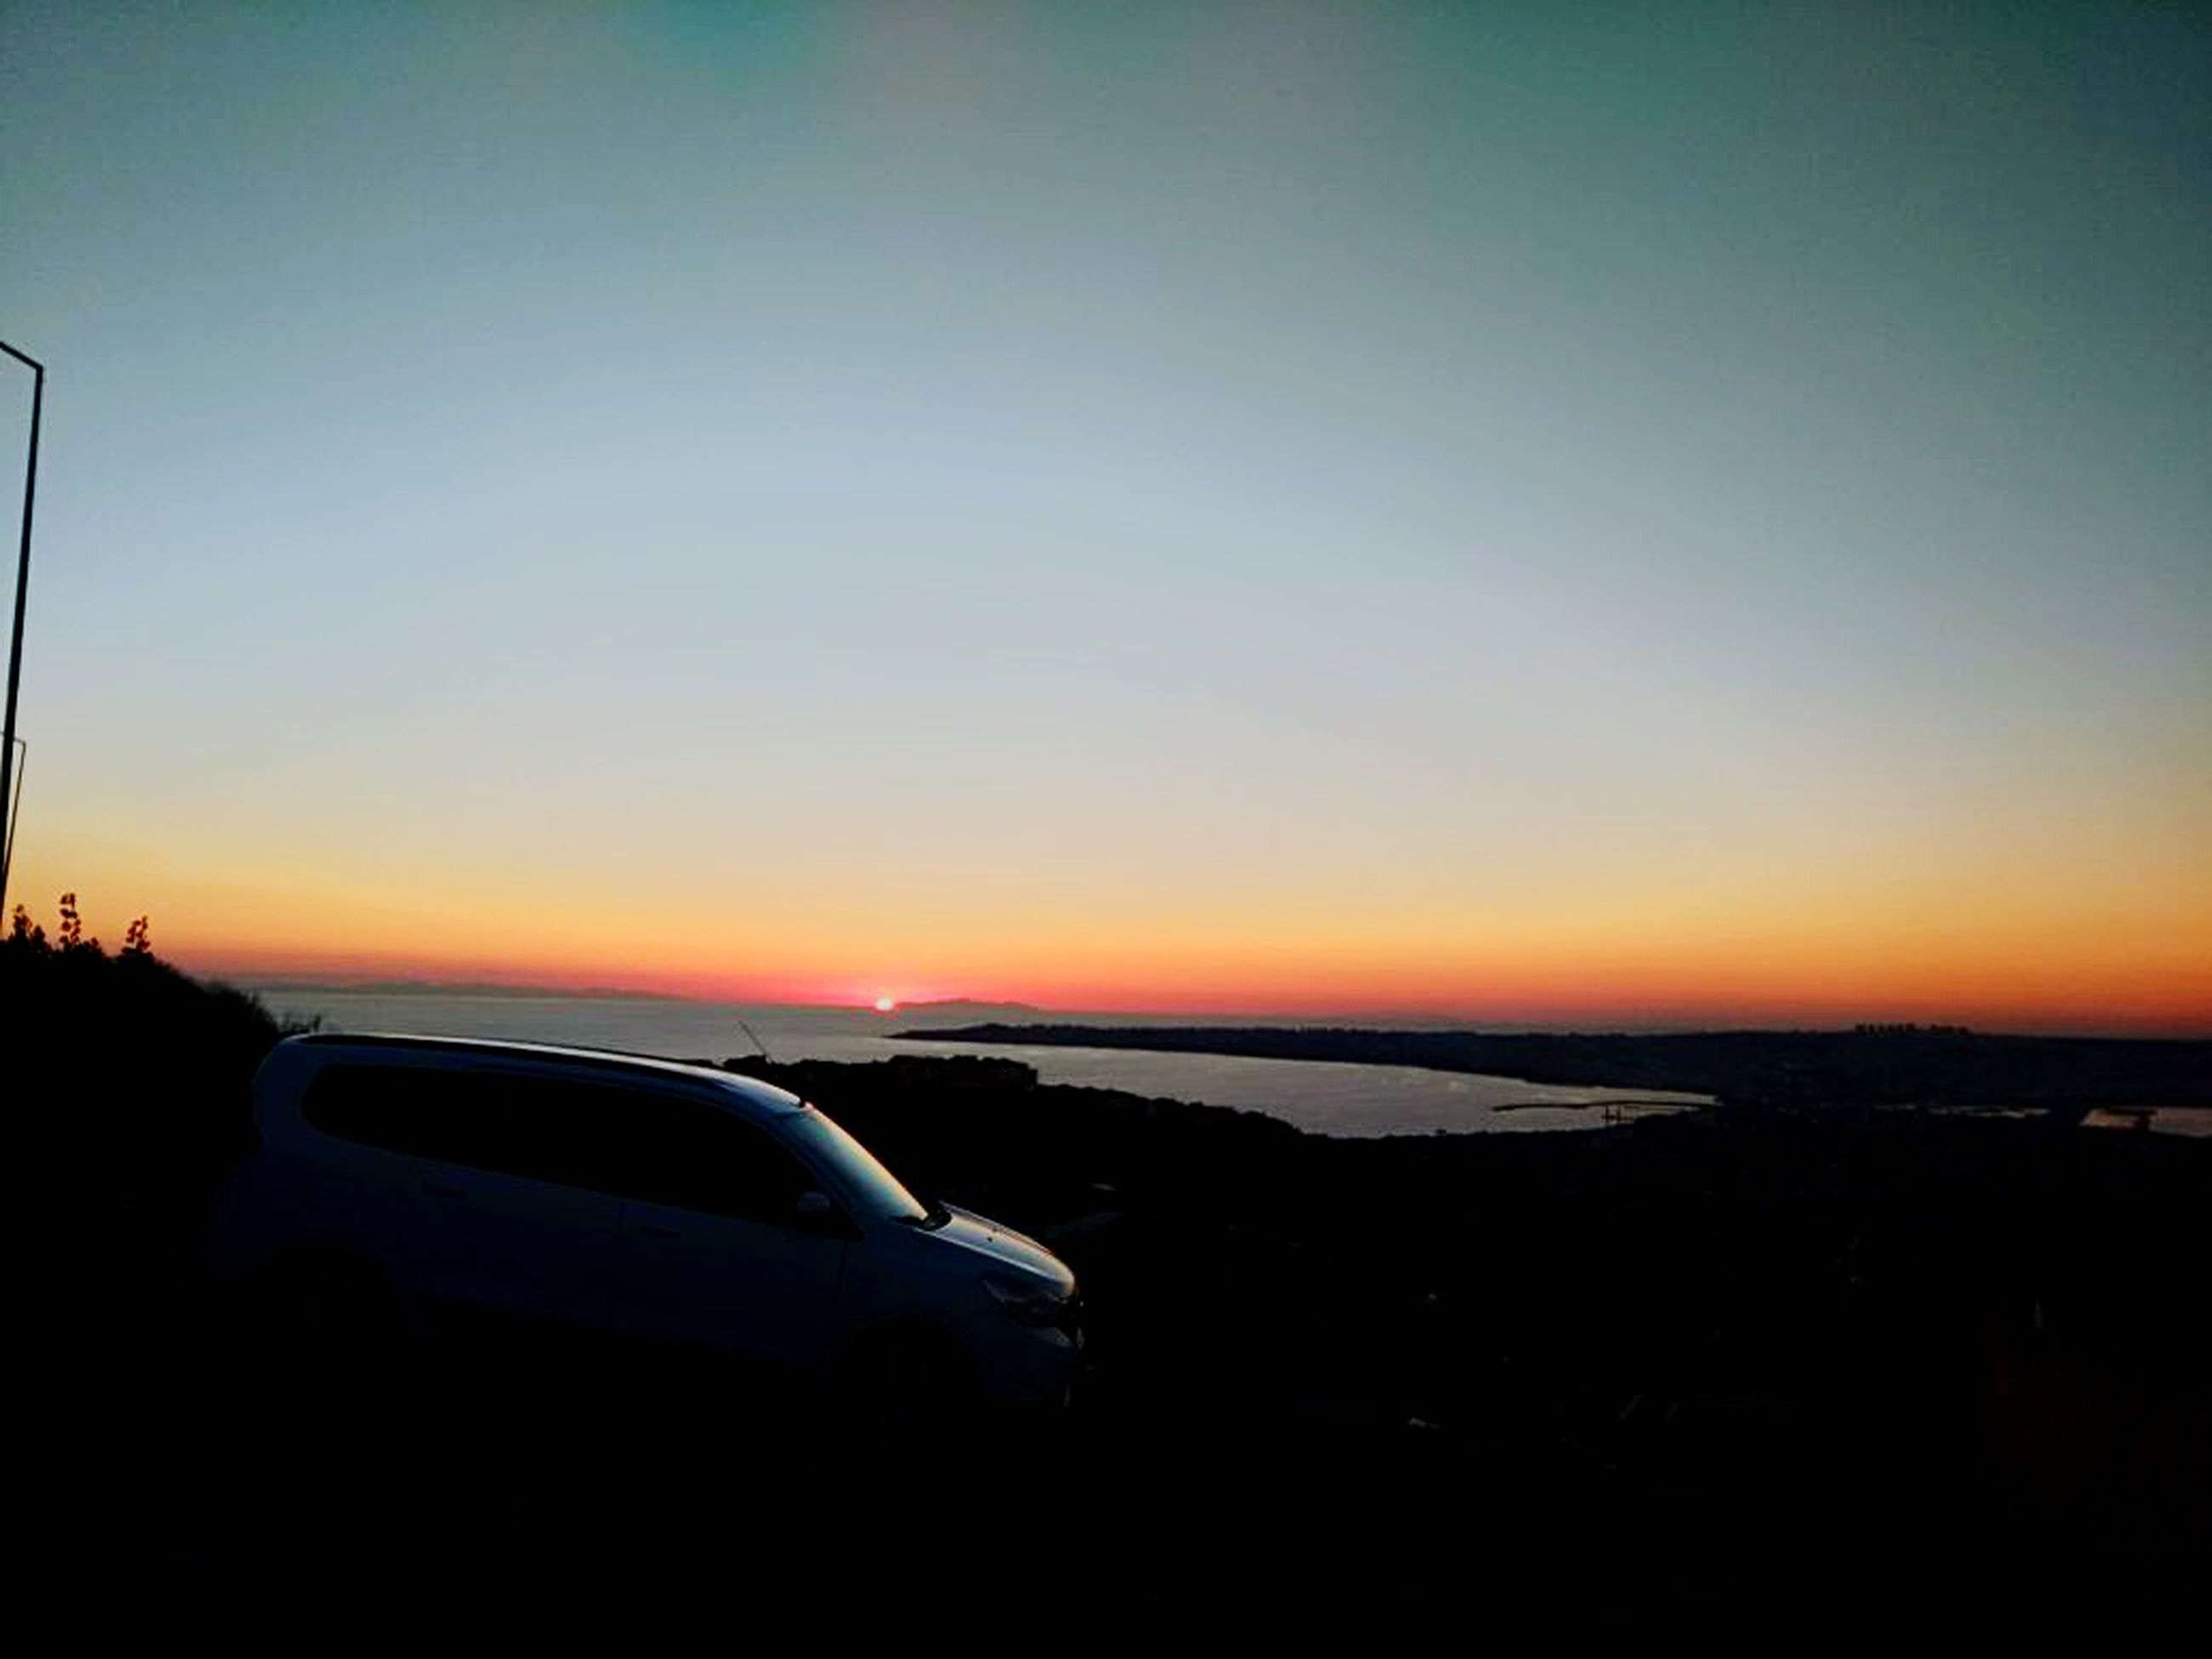 sunset, car, transportation, sea, sky, no people, scenics, land vehicle, nature, clear sky, landscape, beauty in nature, beach, outdoors, horizon over water